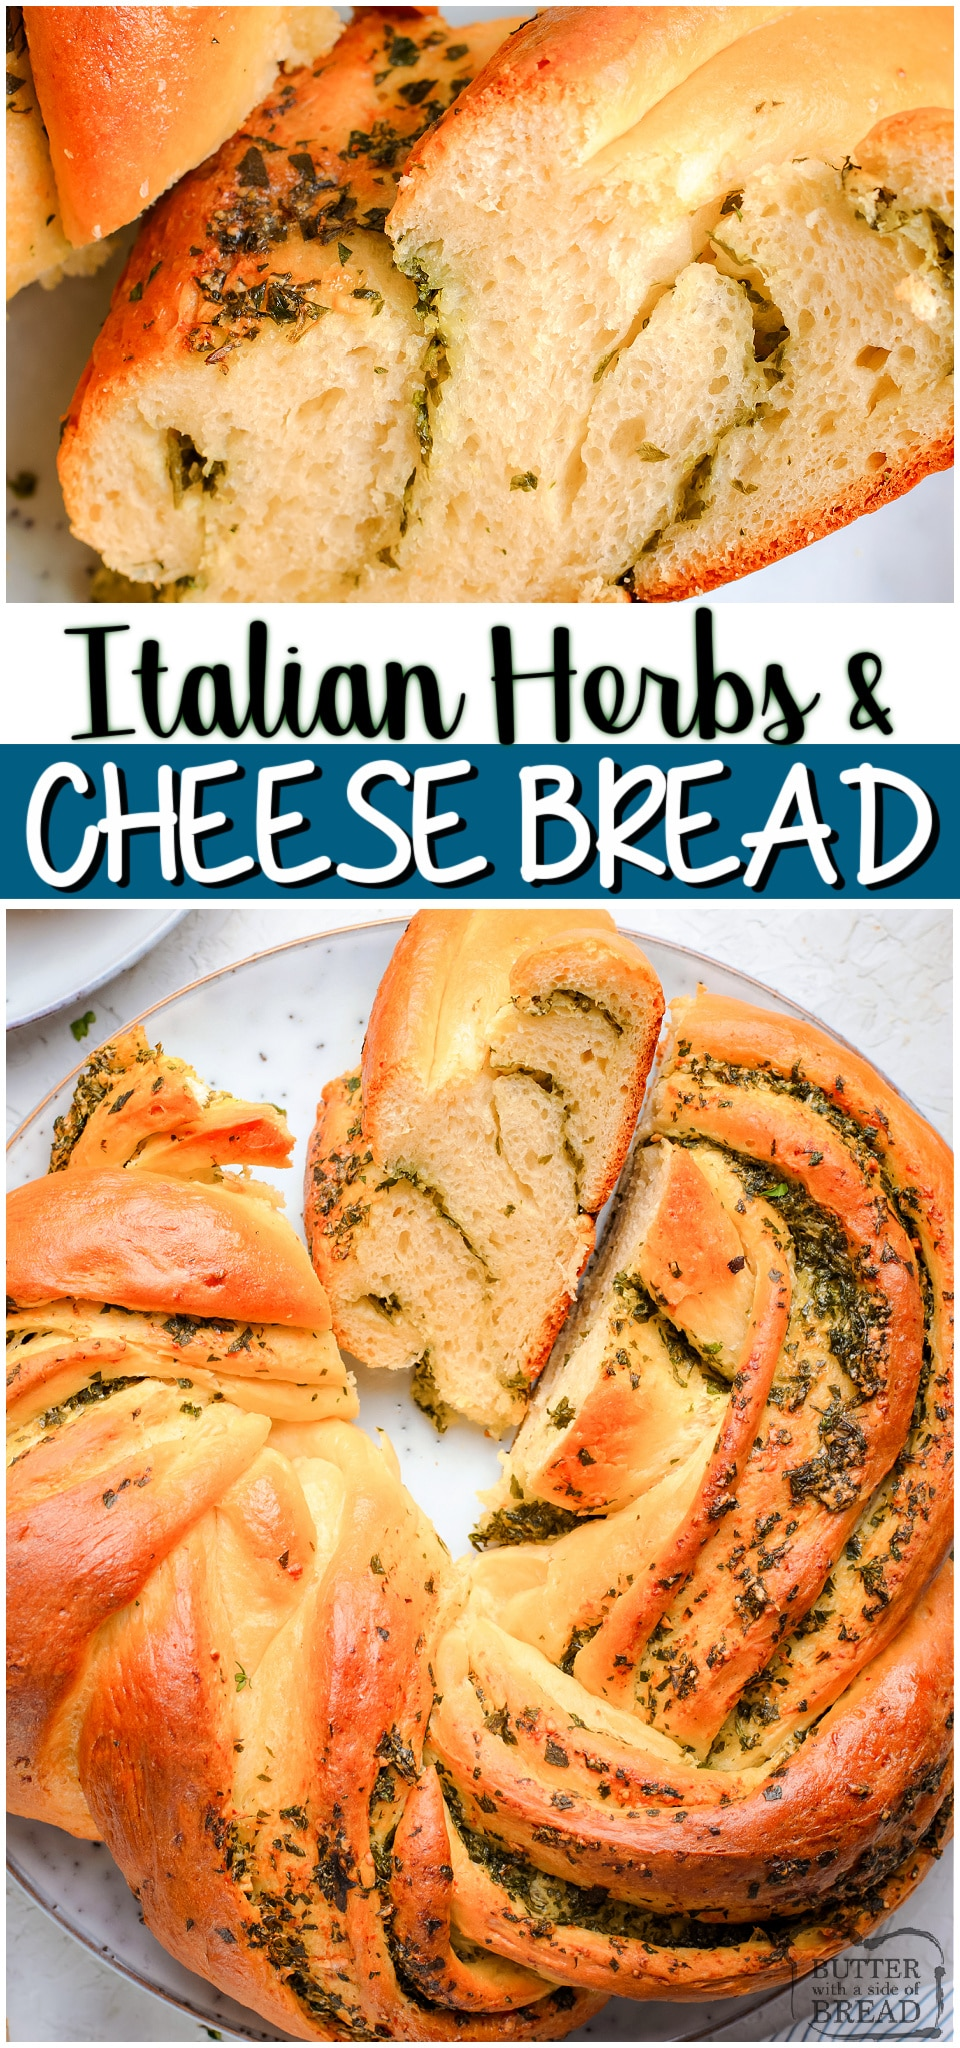 Italian Herbs & Cheese Bread is a soft, easy to make homemade bread bursting with fresh flavors! Herbs and cheese combine in this incredible savory bread recipe. #bread #herbs #cheese #baking #homemade #cheesebread #easyrecipe from BUTTER WITH A SIDE OF BREAD